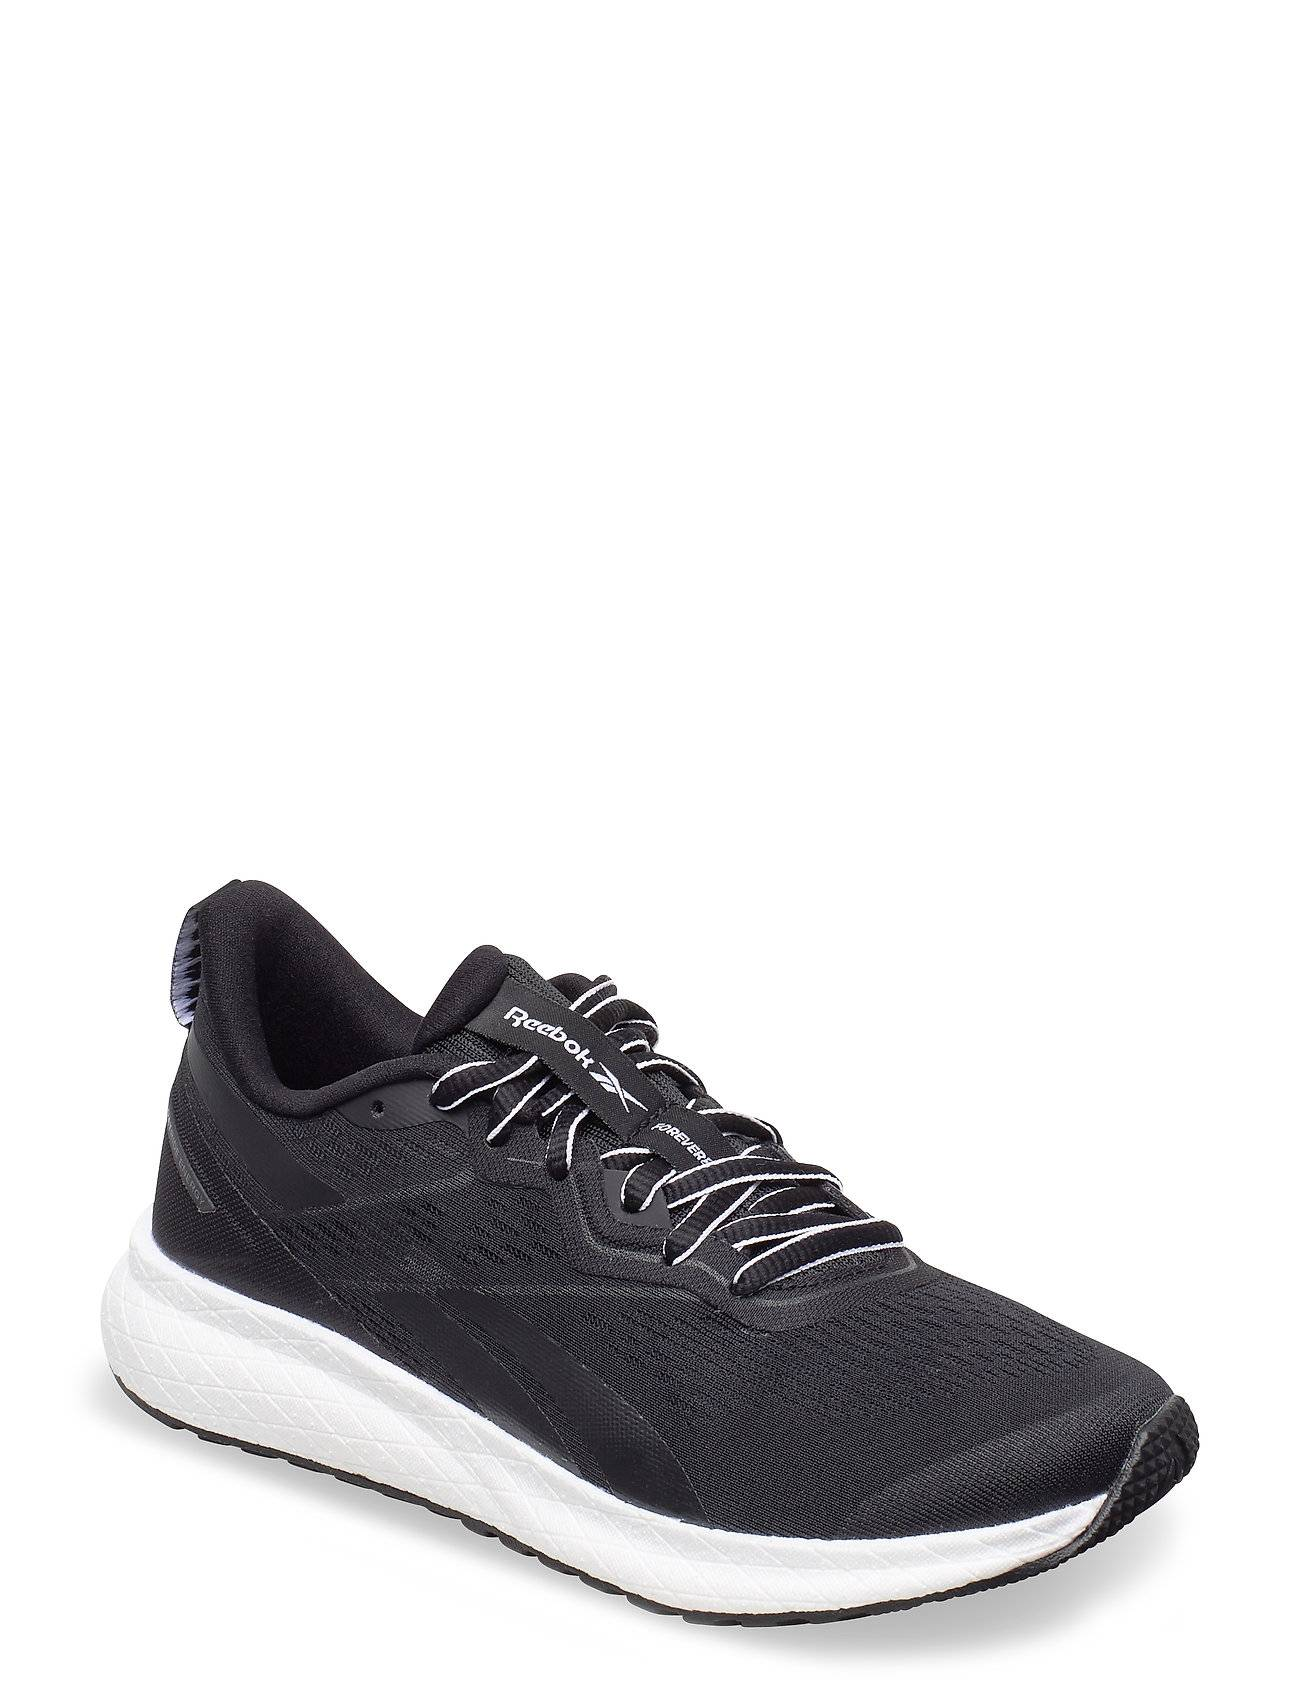 Reebok Performance Forever Floatride Energy 2 Shoes Sport Shoes Running Shoes Musta Reebok Performance